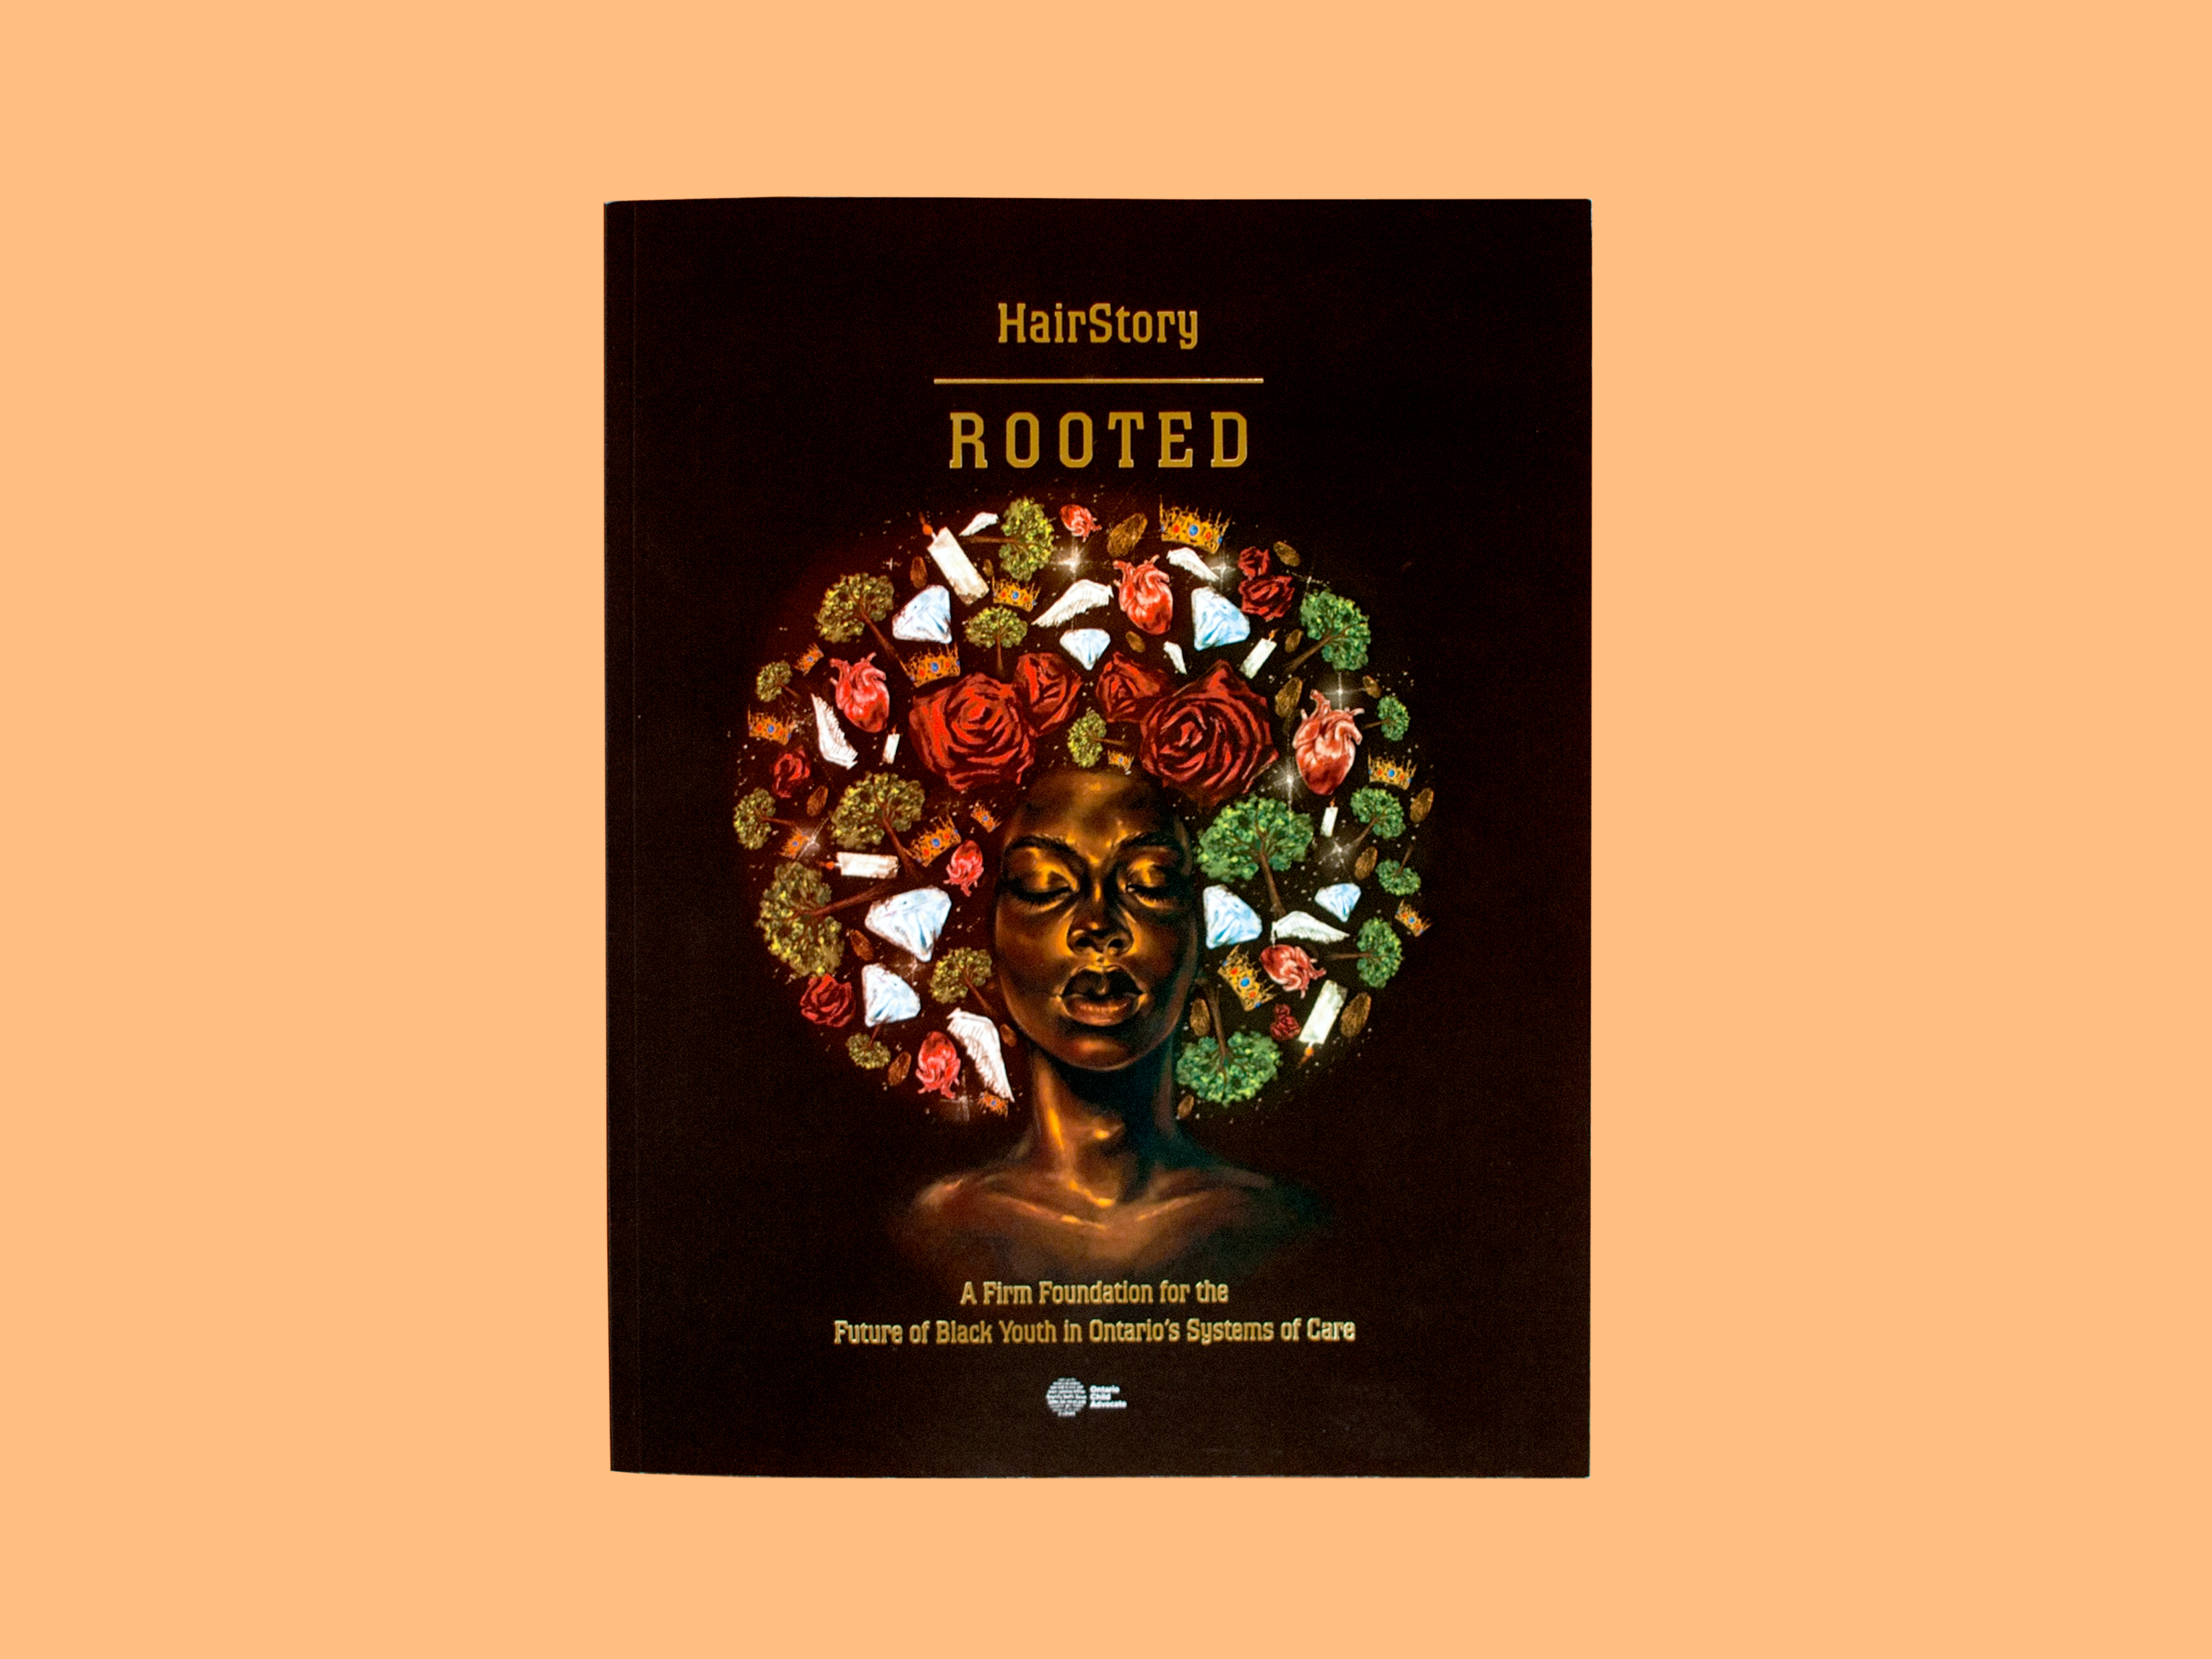 Graphic: Front cover of the report, Black woman with icons forming and afro